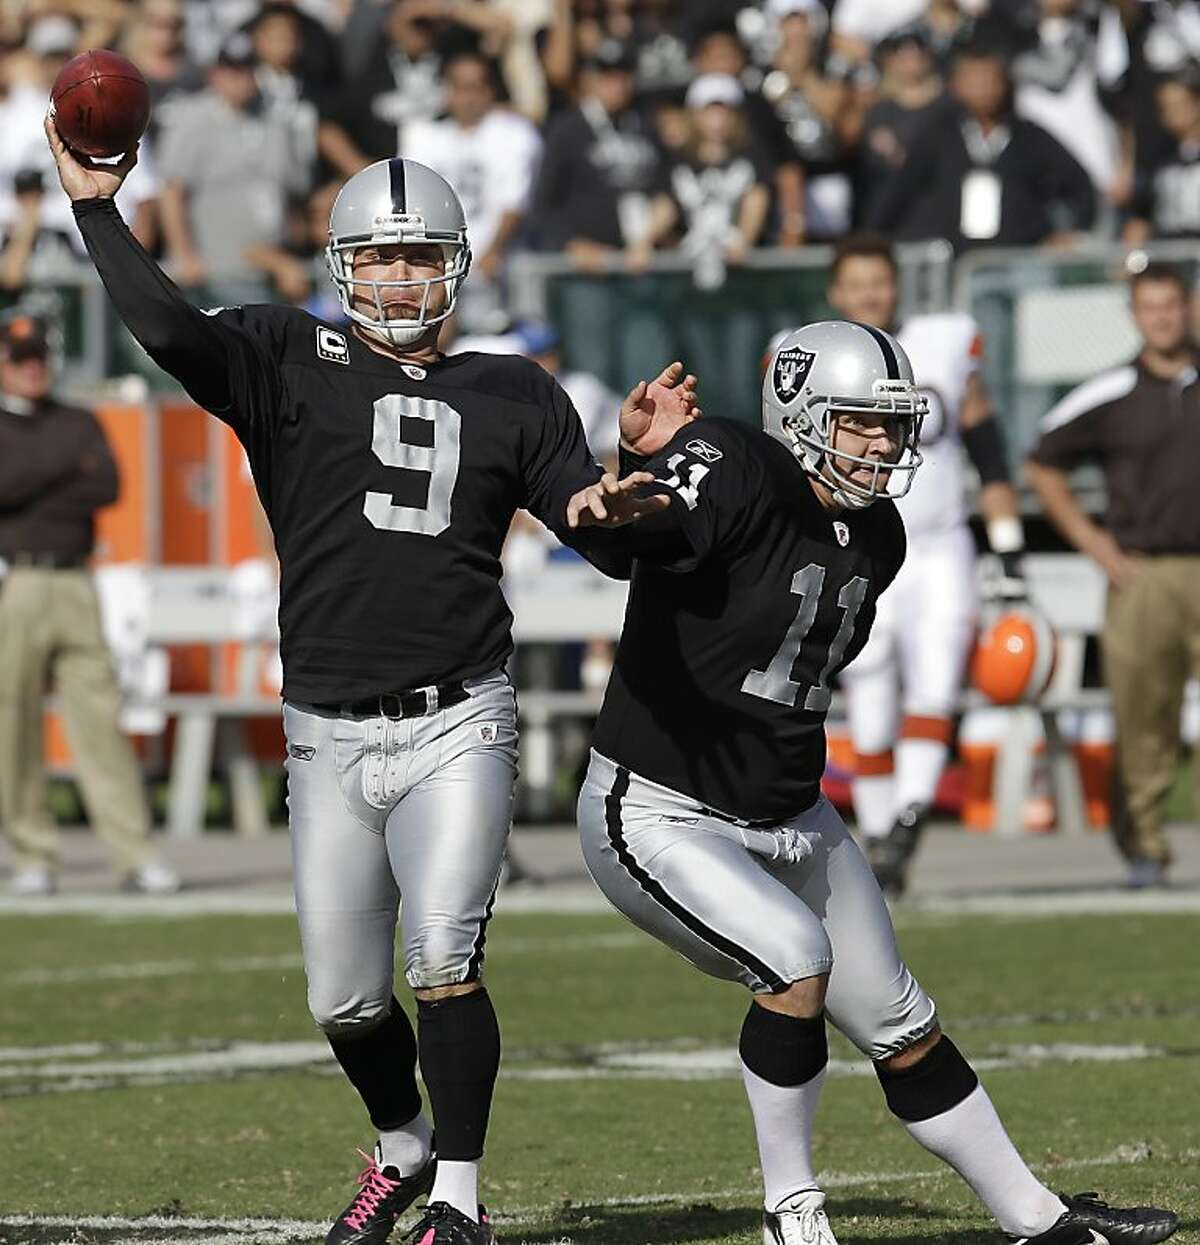 Oakland Raiders punter Shane Lechler (9) passes to tight end Kevin Boss (87) for a 35-yard touchdown pass on a fake field goal against the Cleveland Browns in the third quarter of an NFL football game in Oakland, Calif., Sunday, Oct. 16, 2011. Also pictured is Raiders place kicker Sebastian Janikowski (11).(AP Photo/Paul Sakuma)